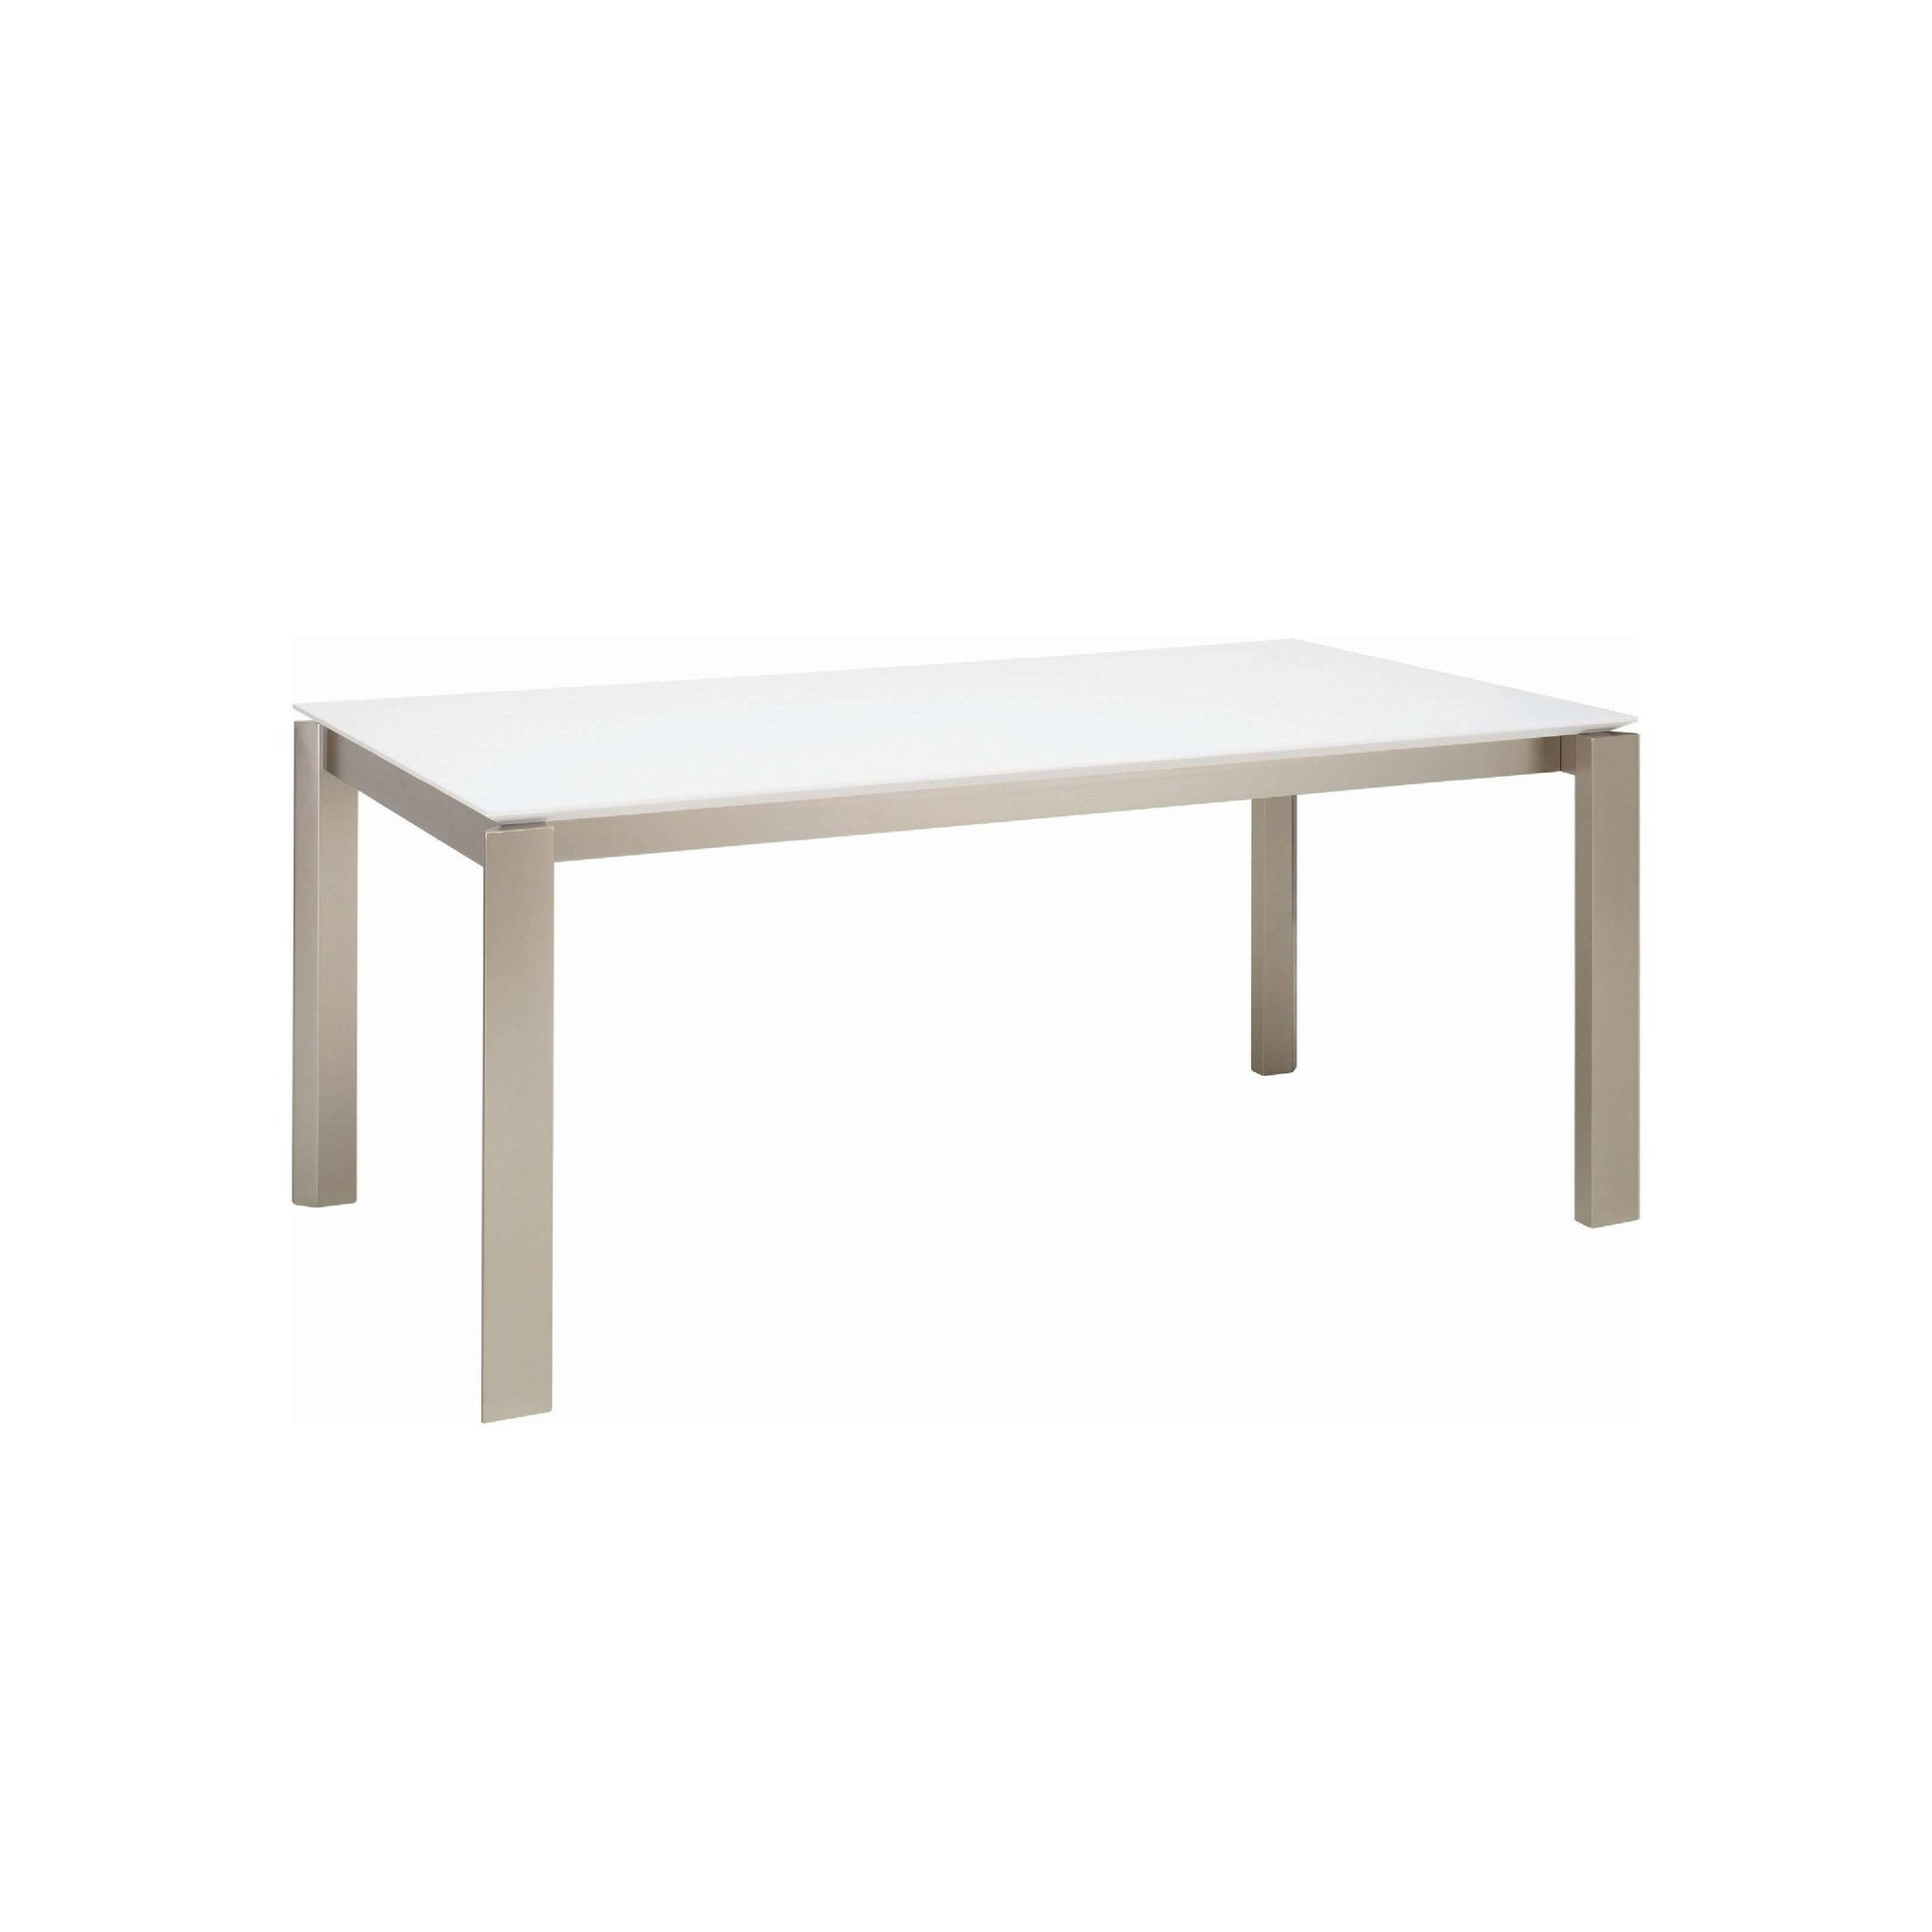 ELWOOD 1.8m Dining Table In Metalic Colour Leg, White Lacquered Top